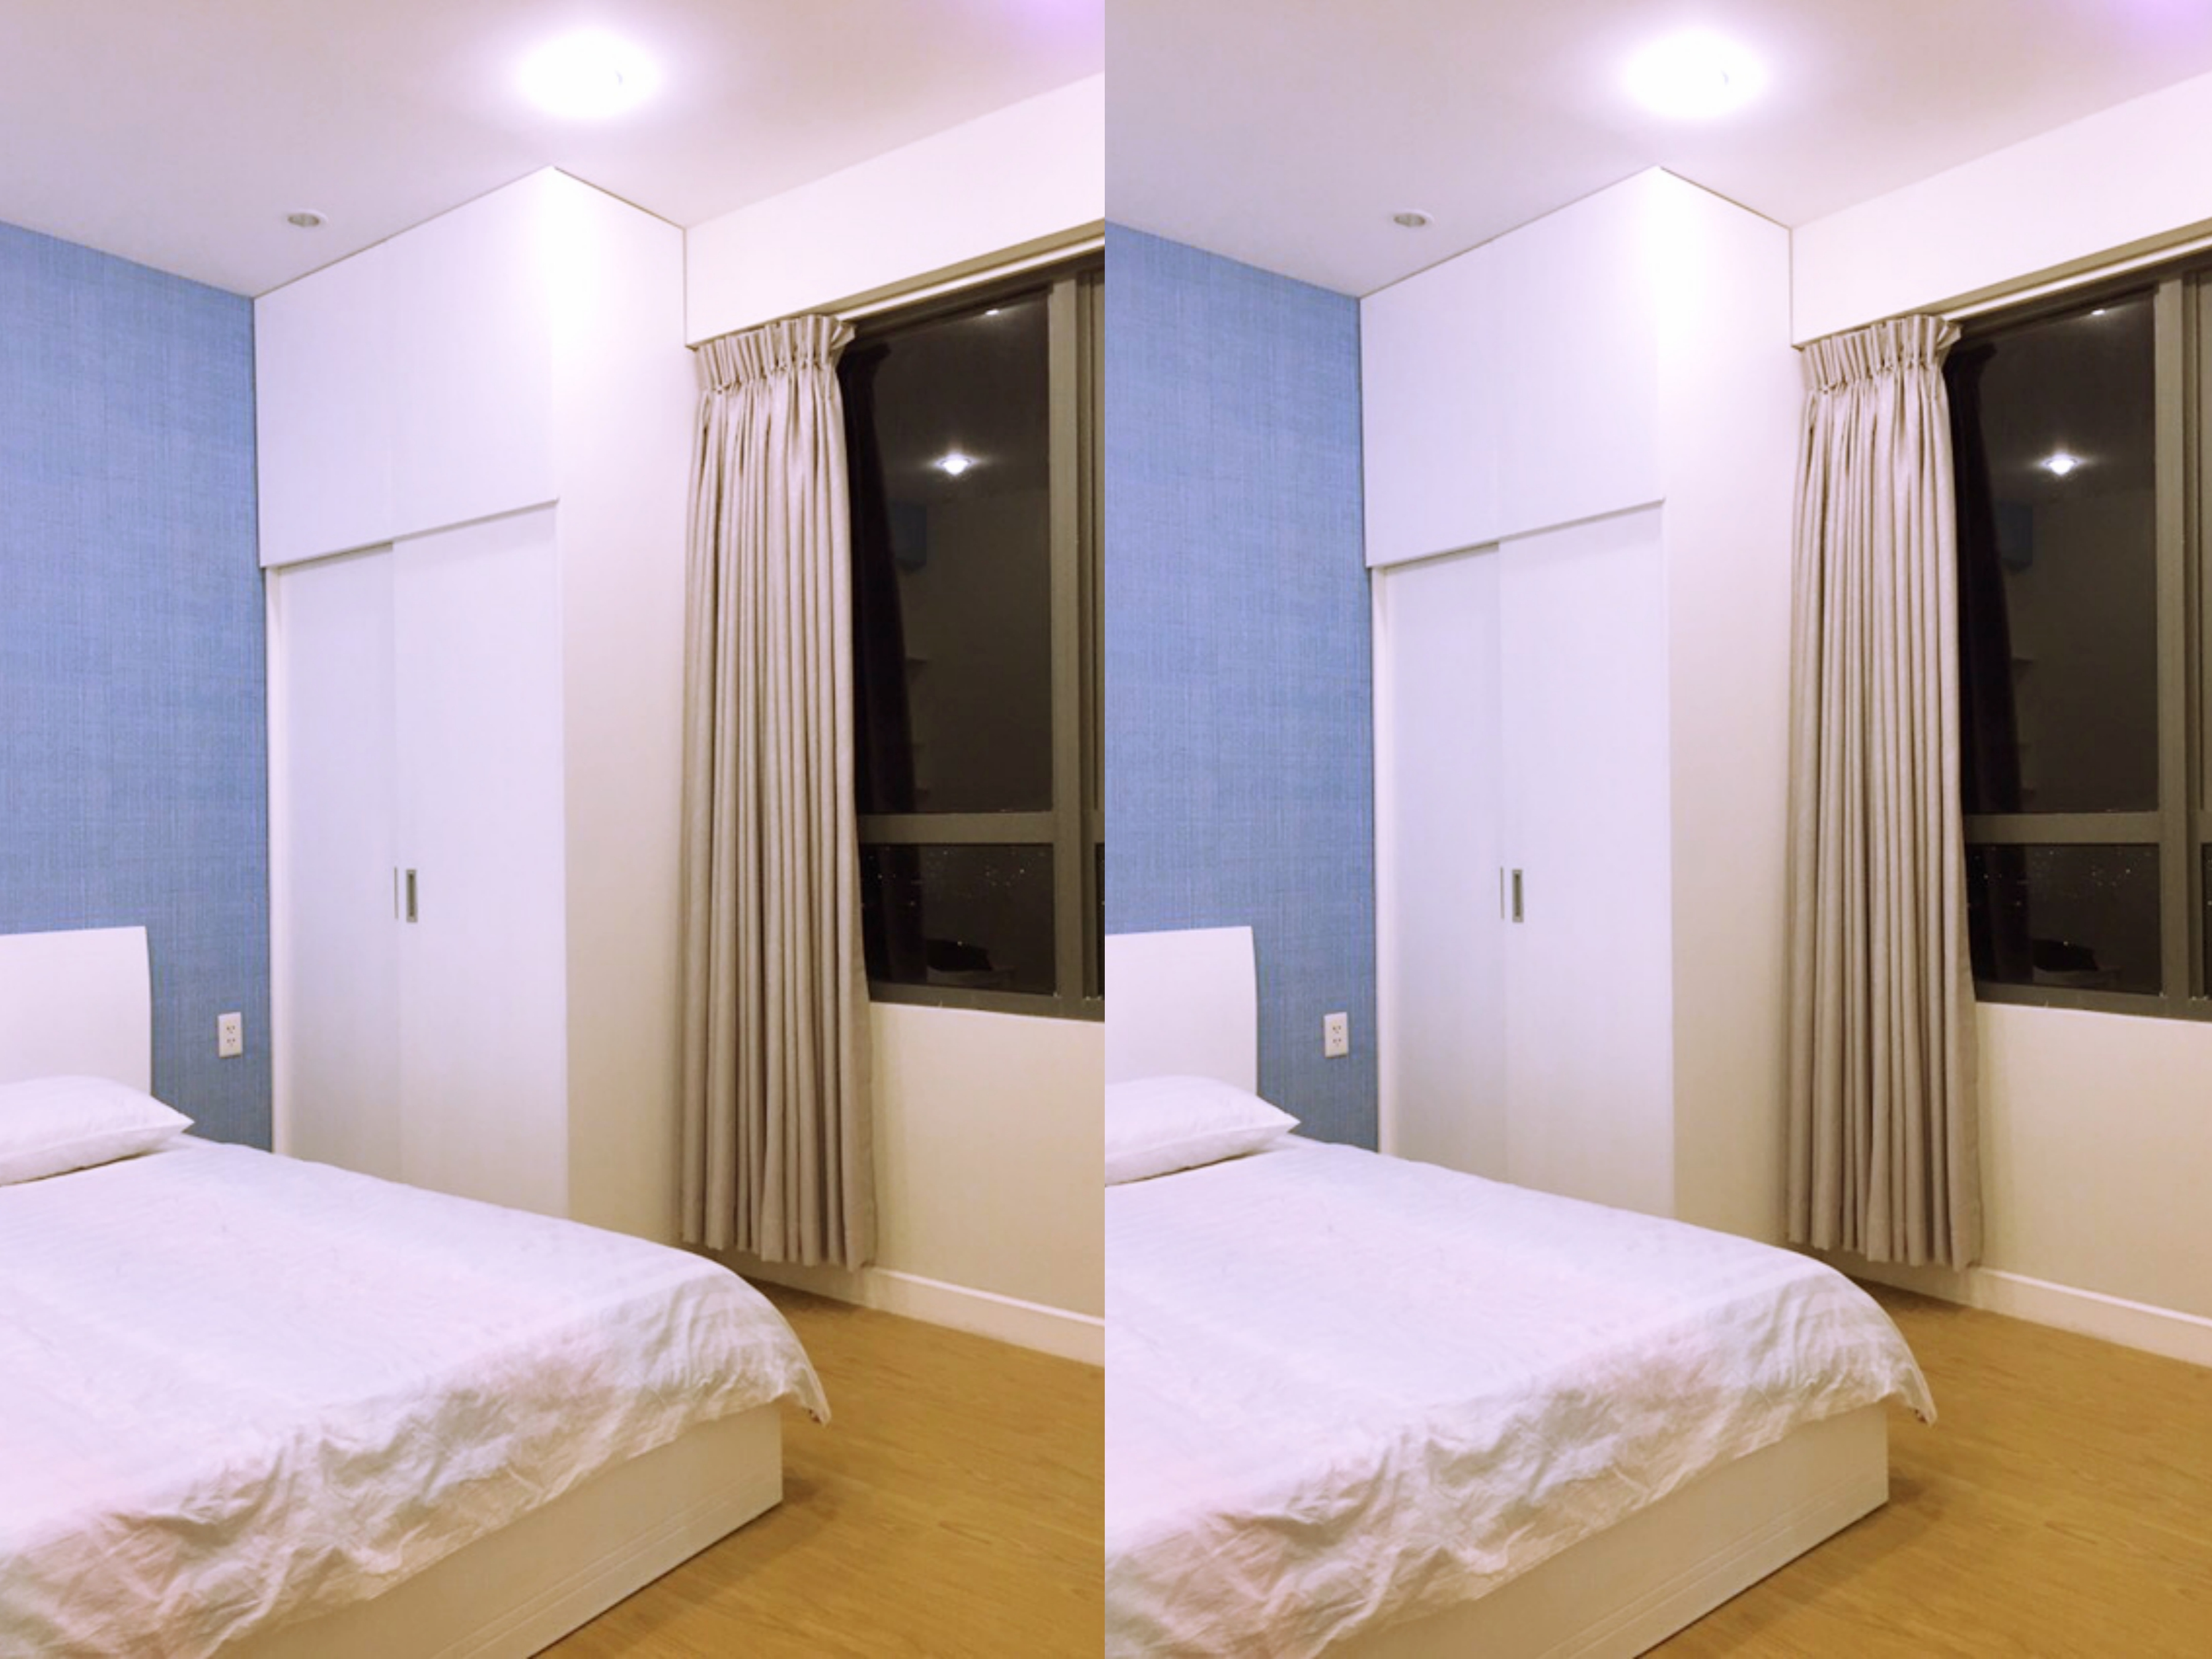 D214520 - Masteri Thao Dien Apartment For Rent - Best Price For Long-term - 2 Bedrooms